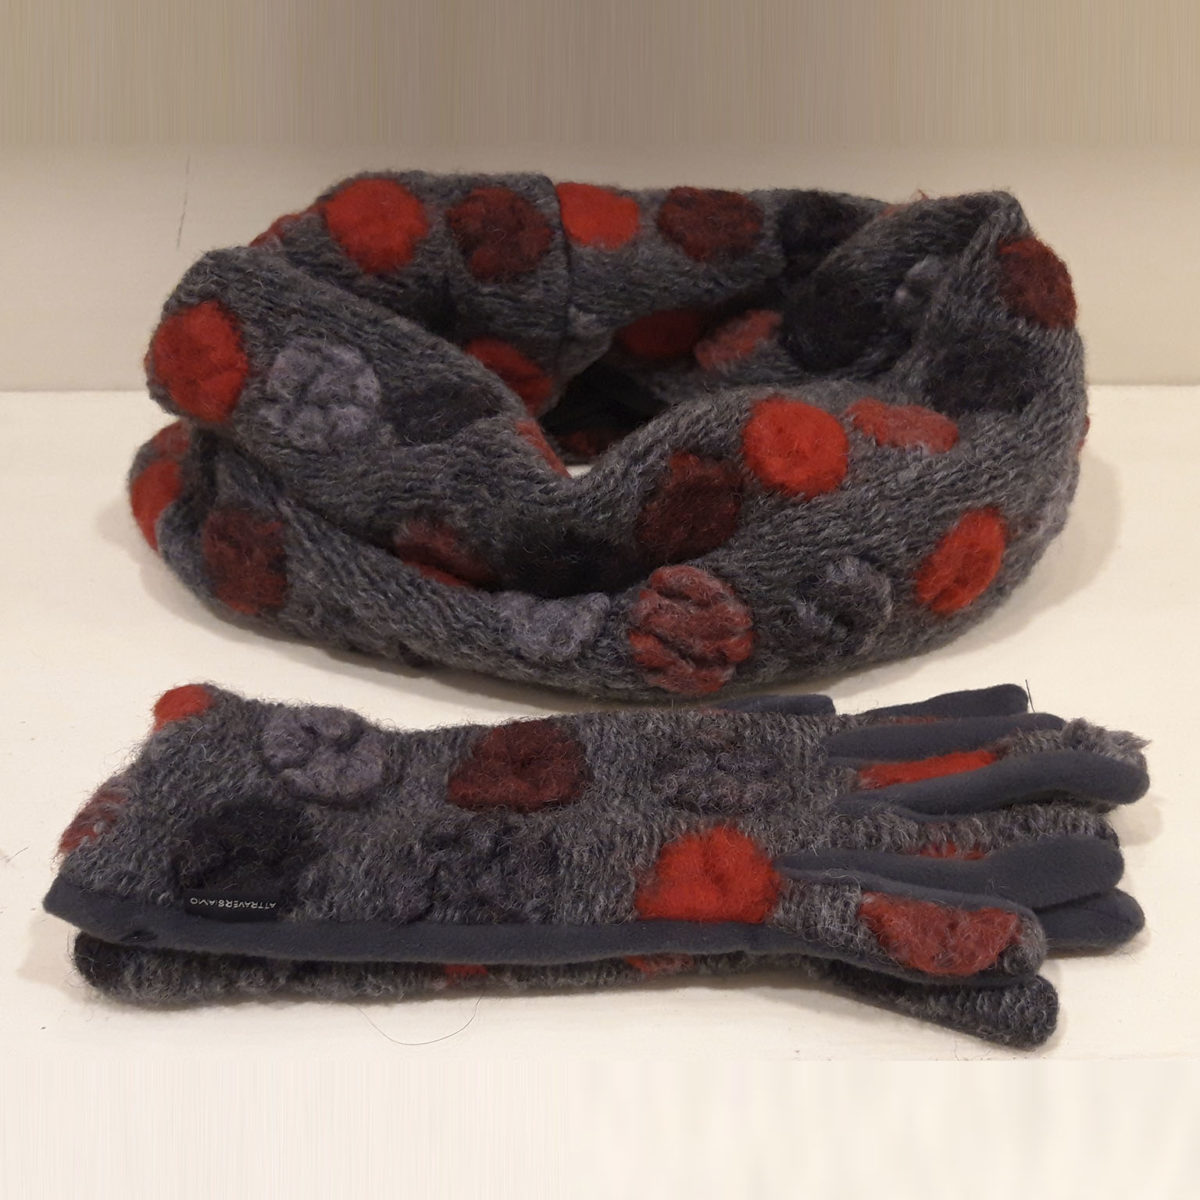 Collar And Gloves In Gray Wool With Large Polka Dots In Red Tones